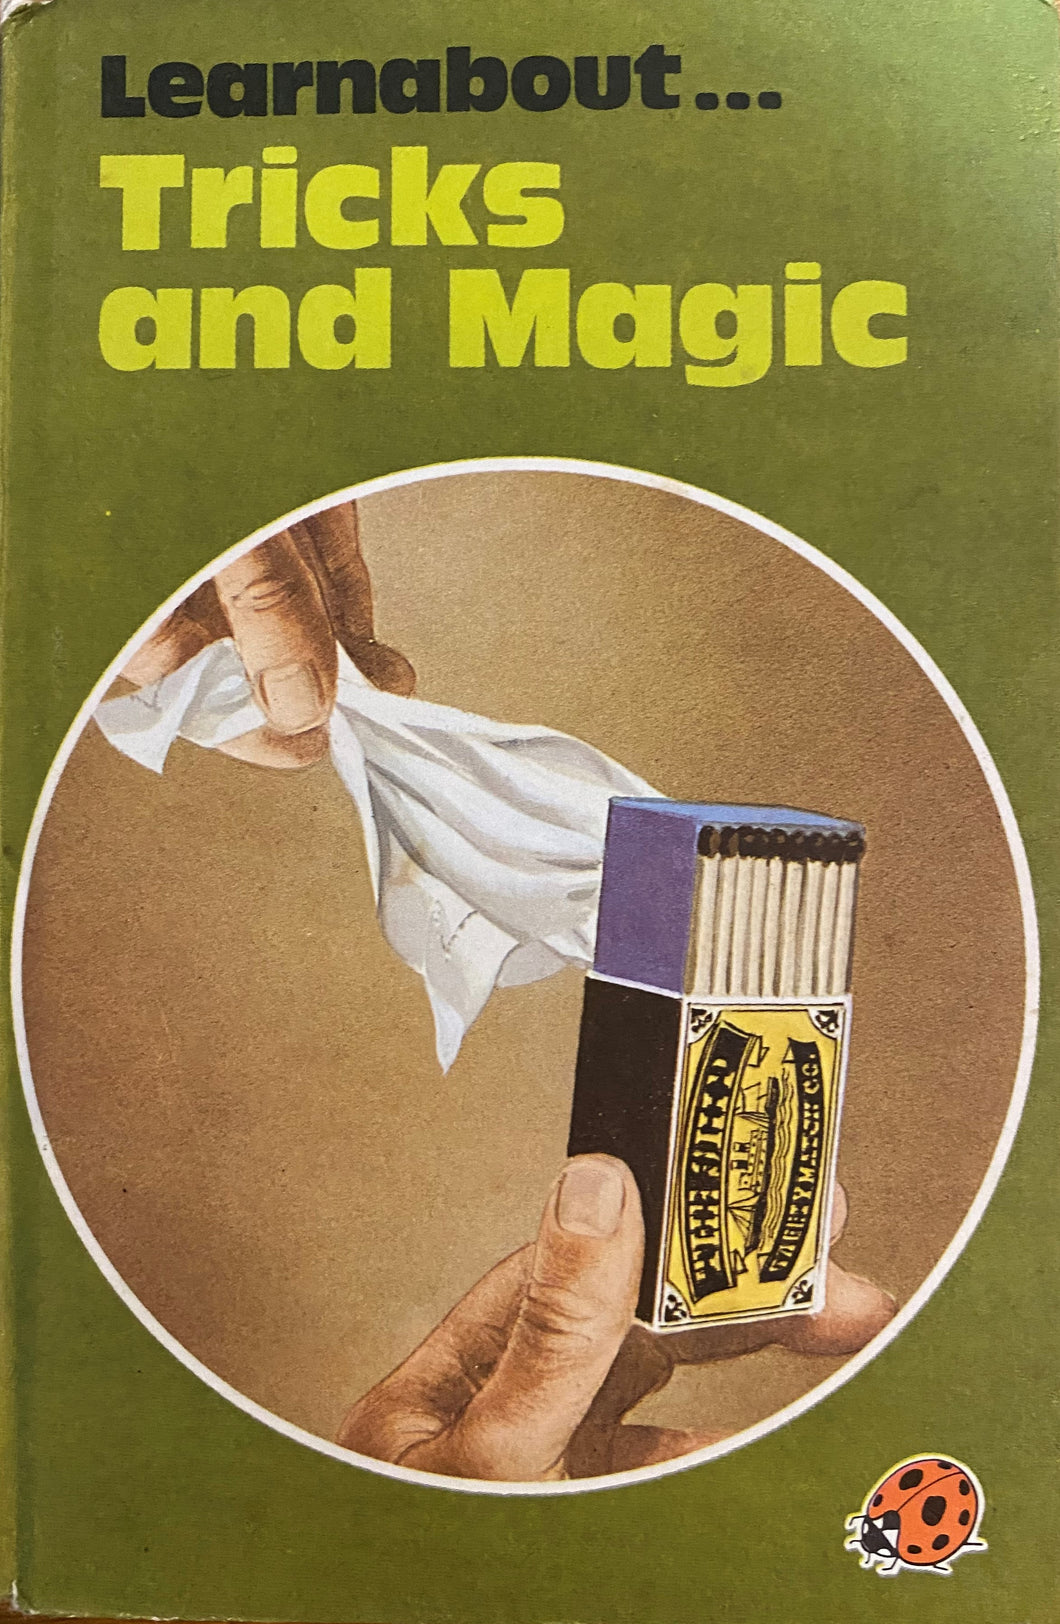 Learnabout Tricks and Magic ( 11 January 1978 - 24 June 1979)